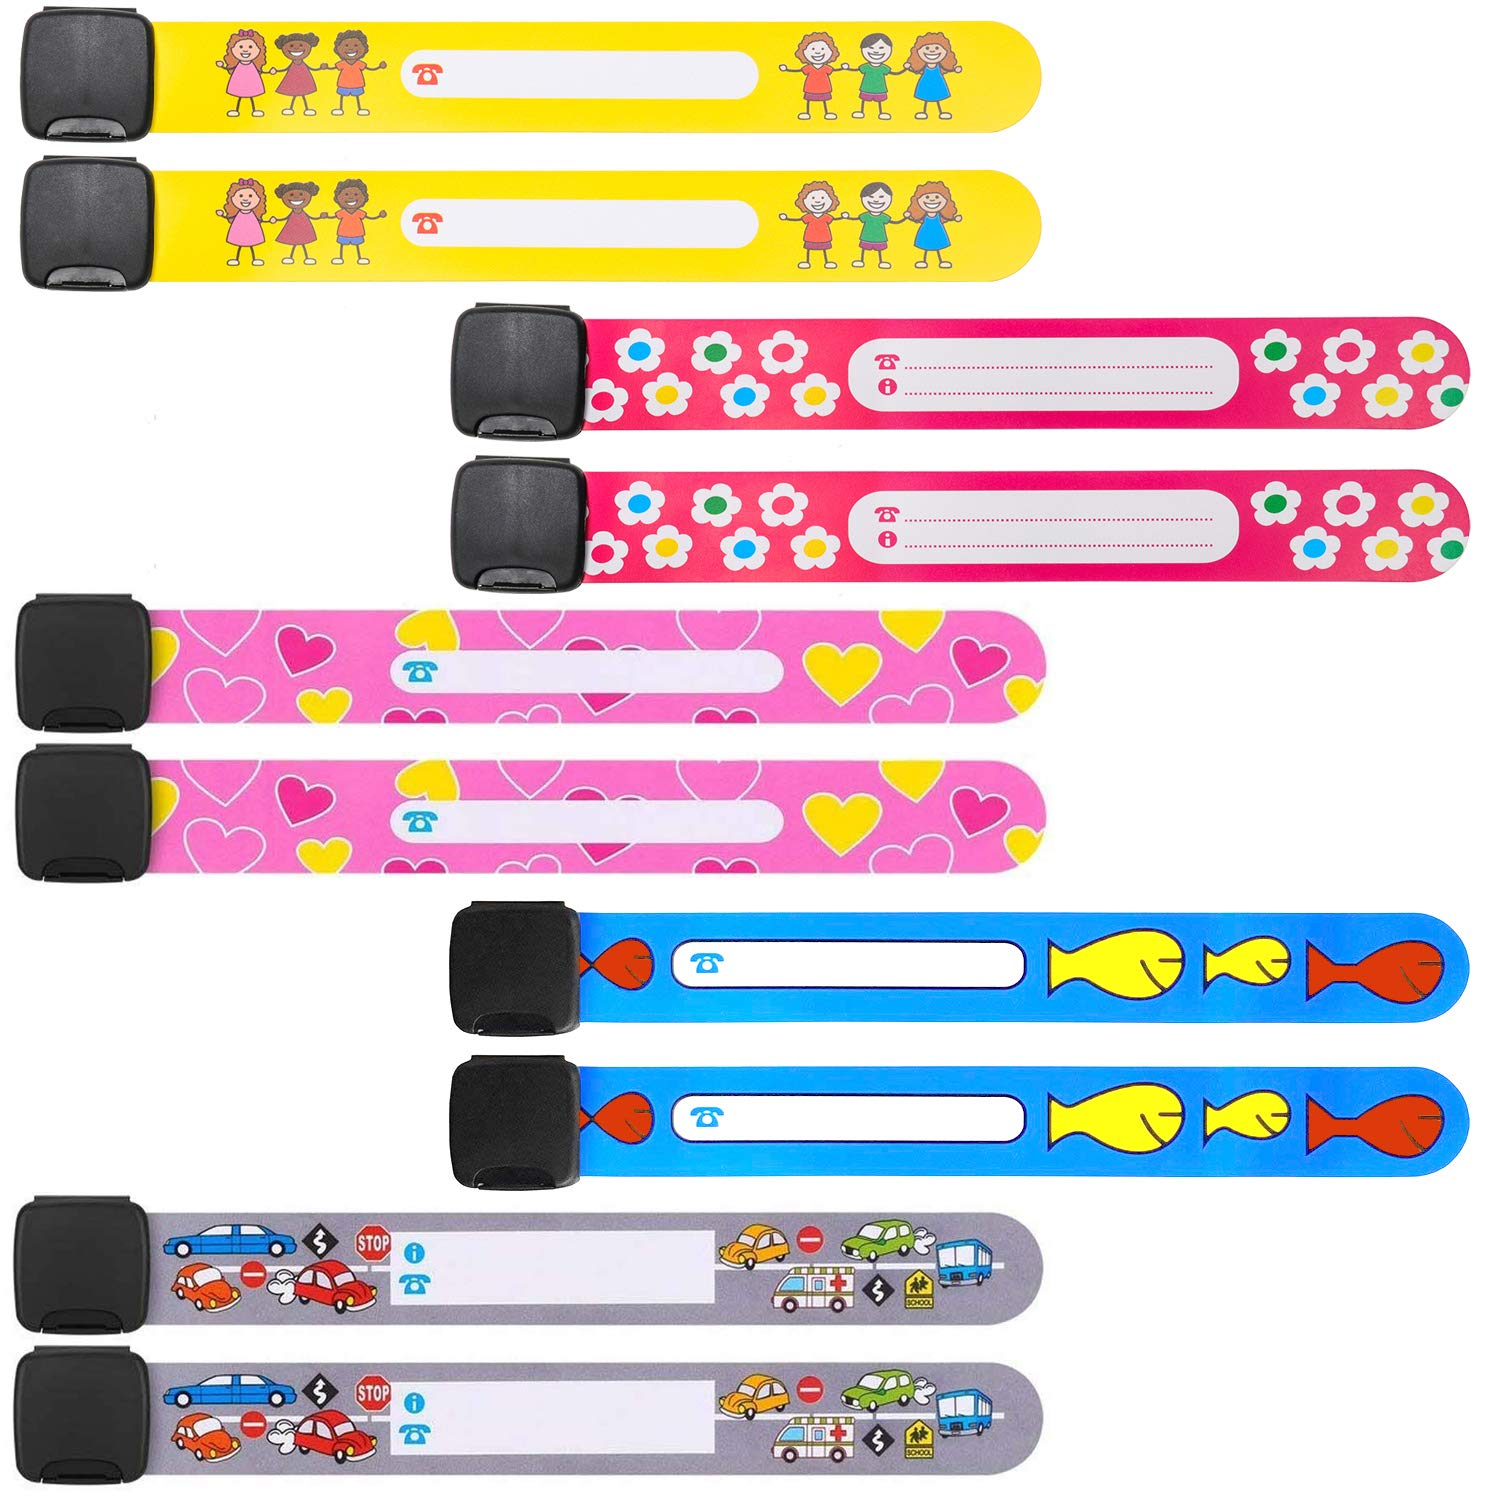 10 Pack Kids Safety Bracelet ID Wristband Emergency Name Bracelets for Children, Wrist Name Bands Safety ID Armband Strap SOS Bracelets for Boys Girls Toddlers, Waterproof Reusable Labeling. Junboys